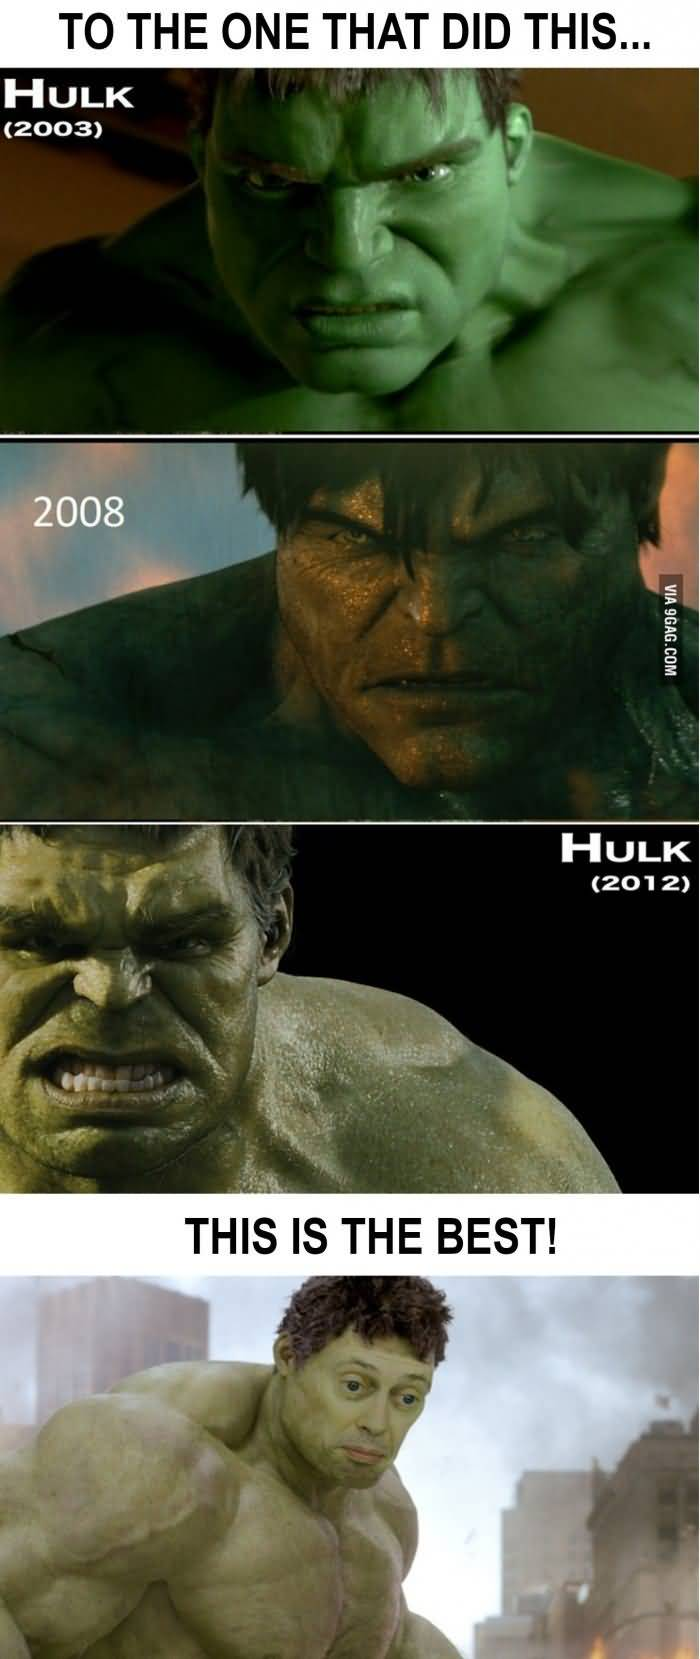 To The One That Hulk Meme